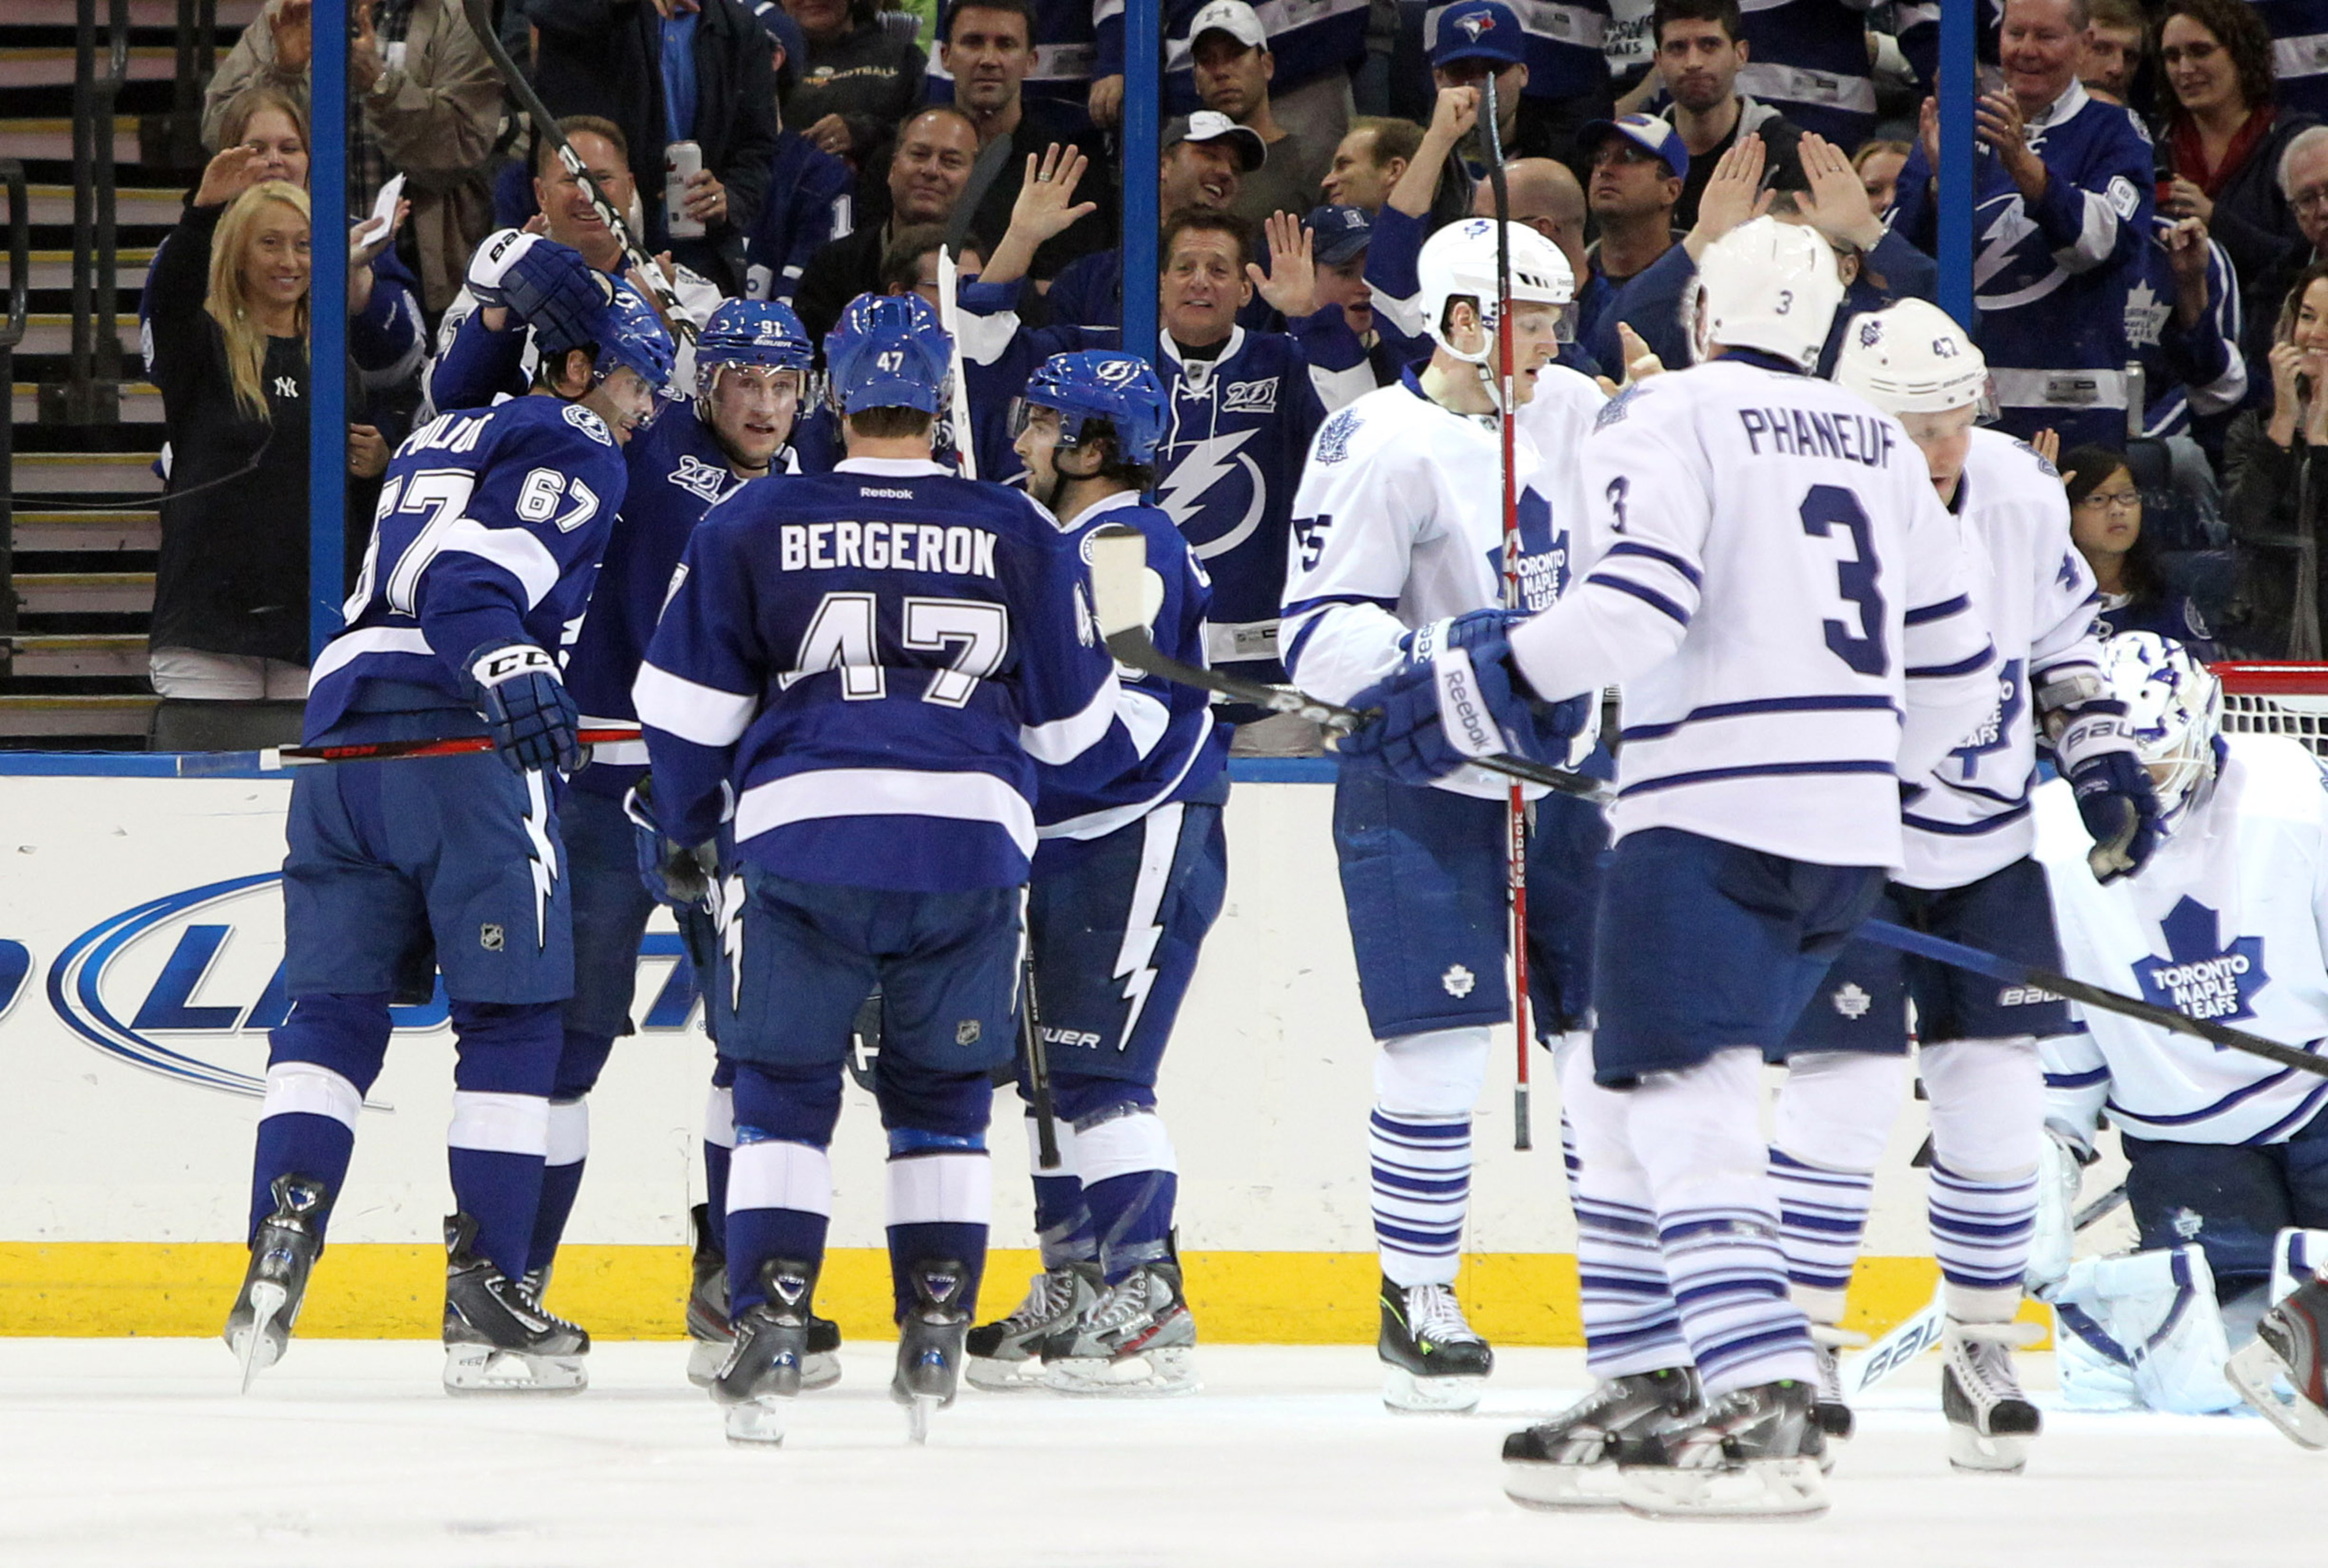 Steve Stamkos and the Lightning have won three of their last four games as they reverse the 6-game winless streak that temporarily cost them the top spot in the Southeast Division.